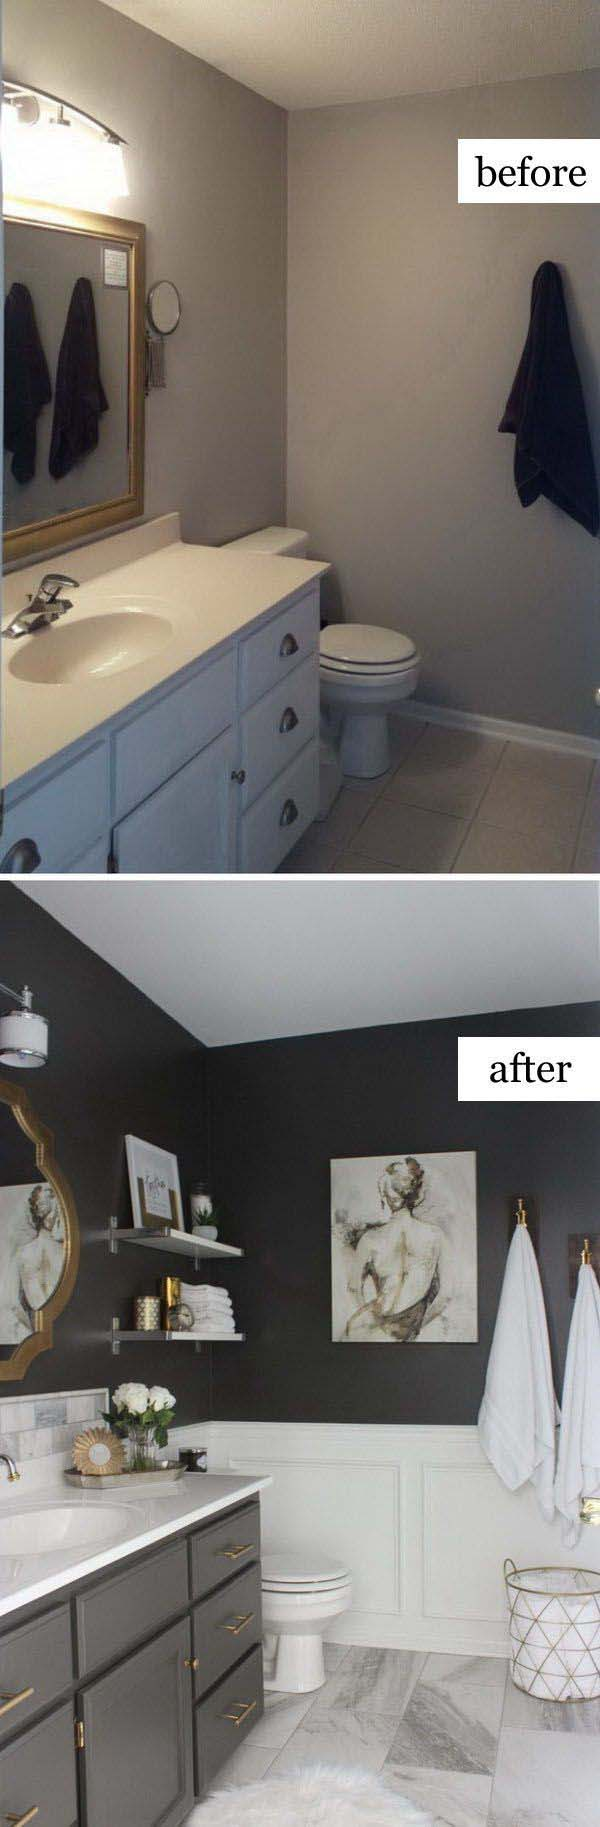 Total Transformation is Possible on a Budget #bathroom #makeover #decorhomeideas